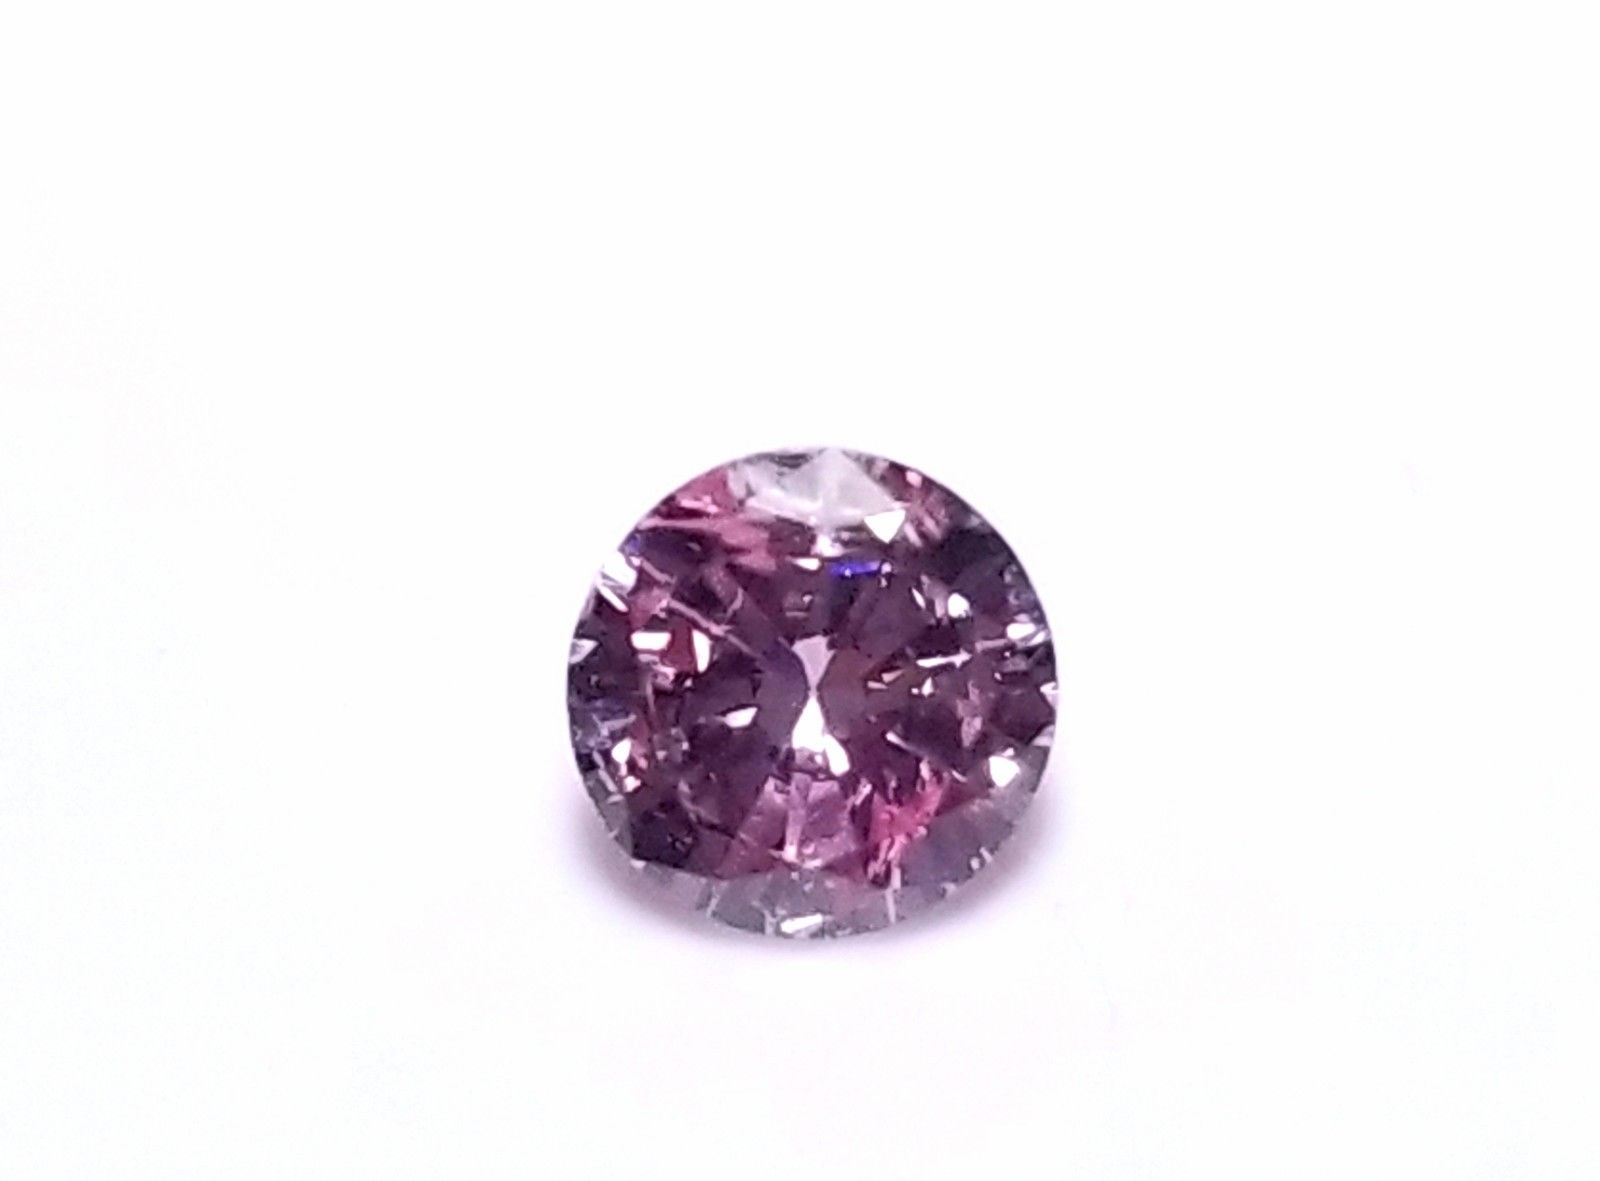 Real 0.32ct Natural Loose Fancy Intense Purple Pink Color Diamond GIA Round